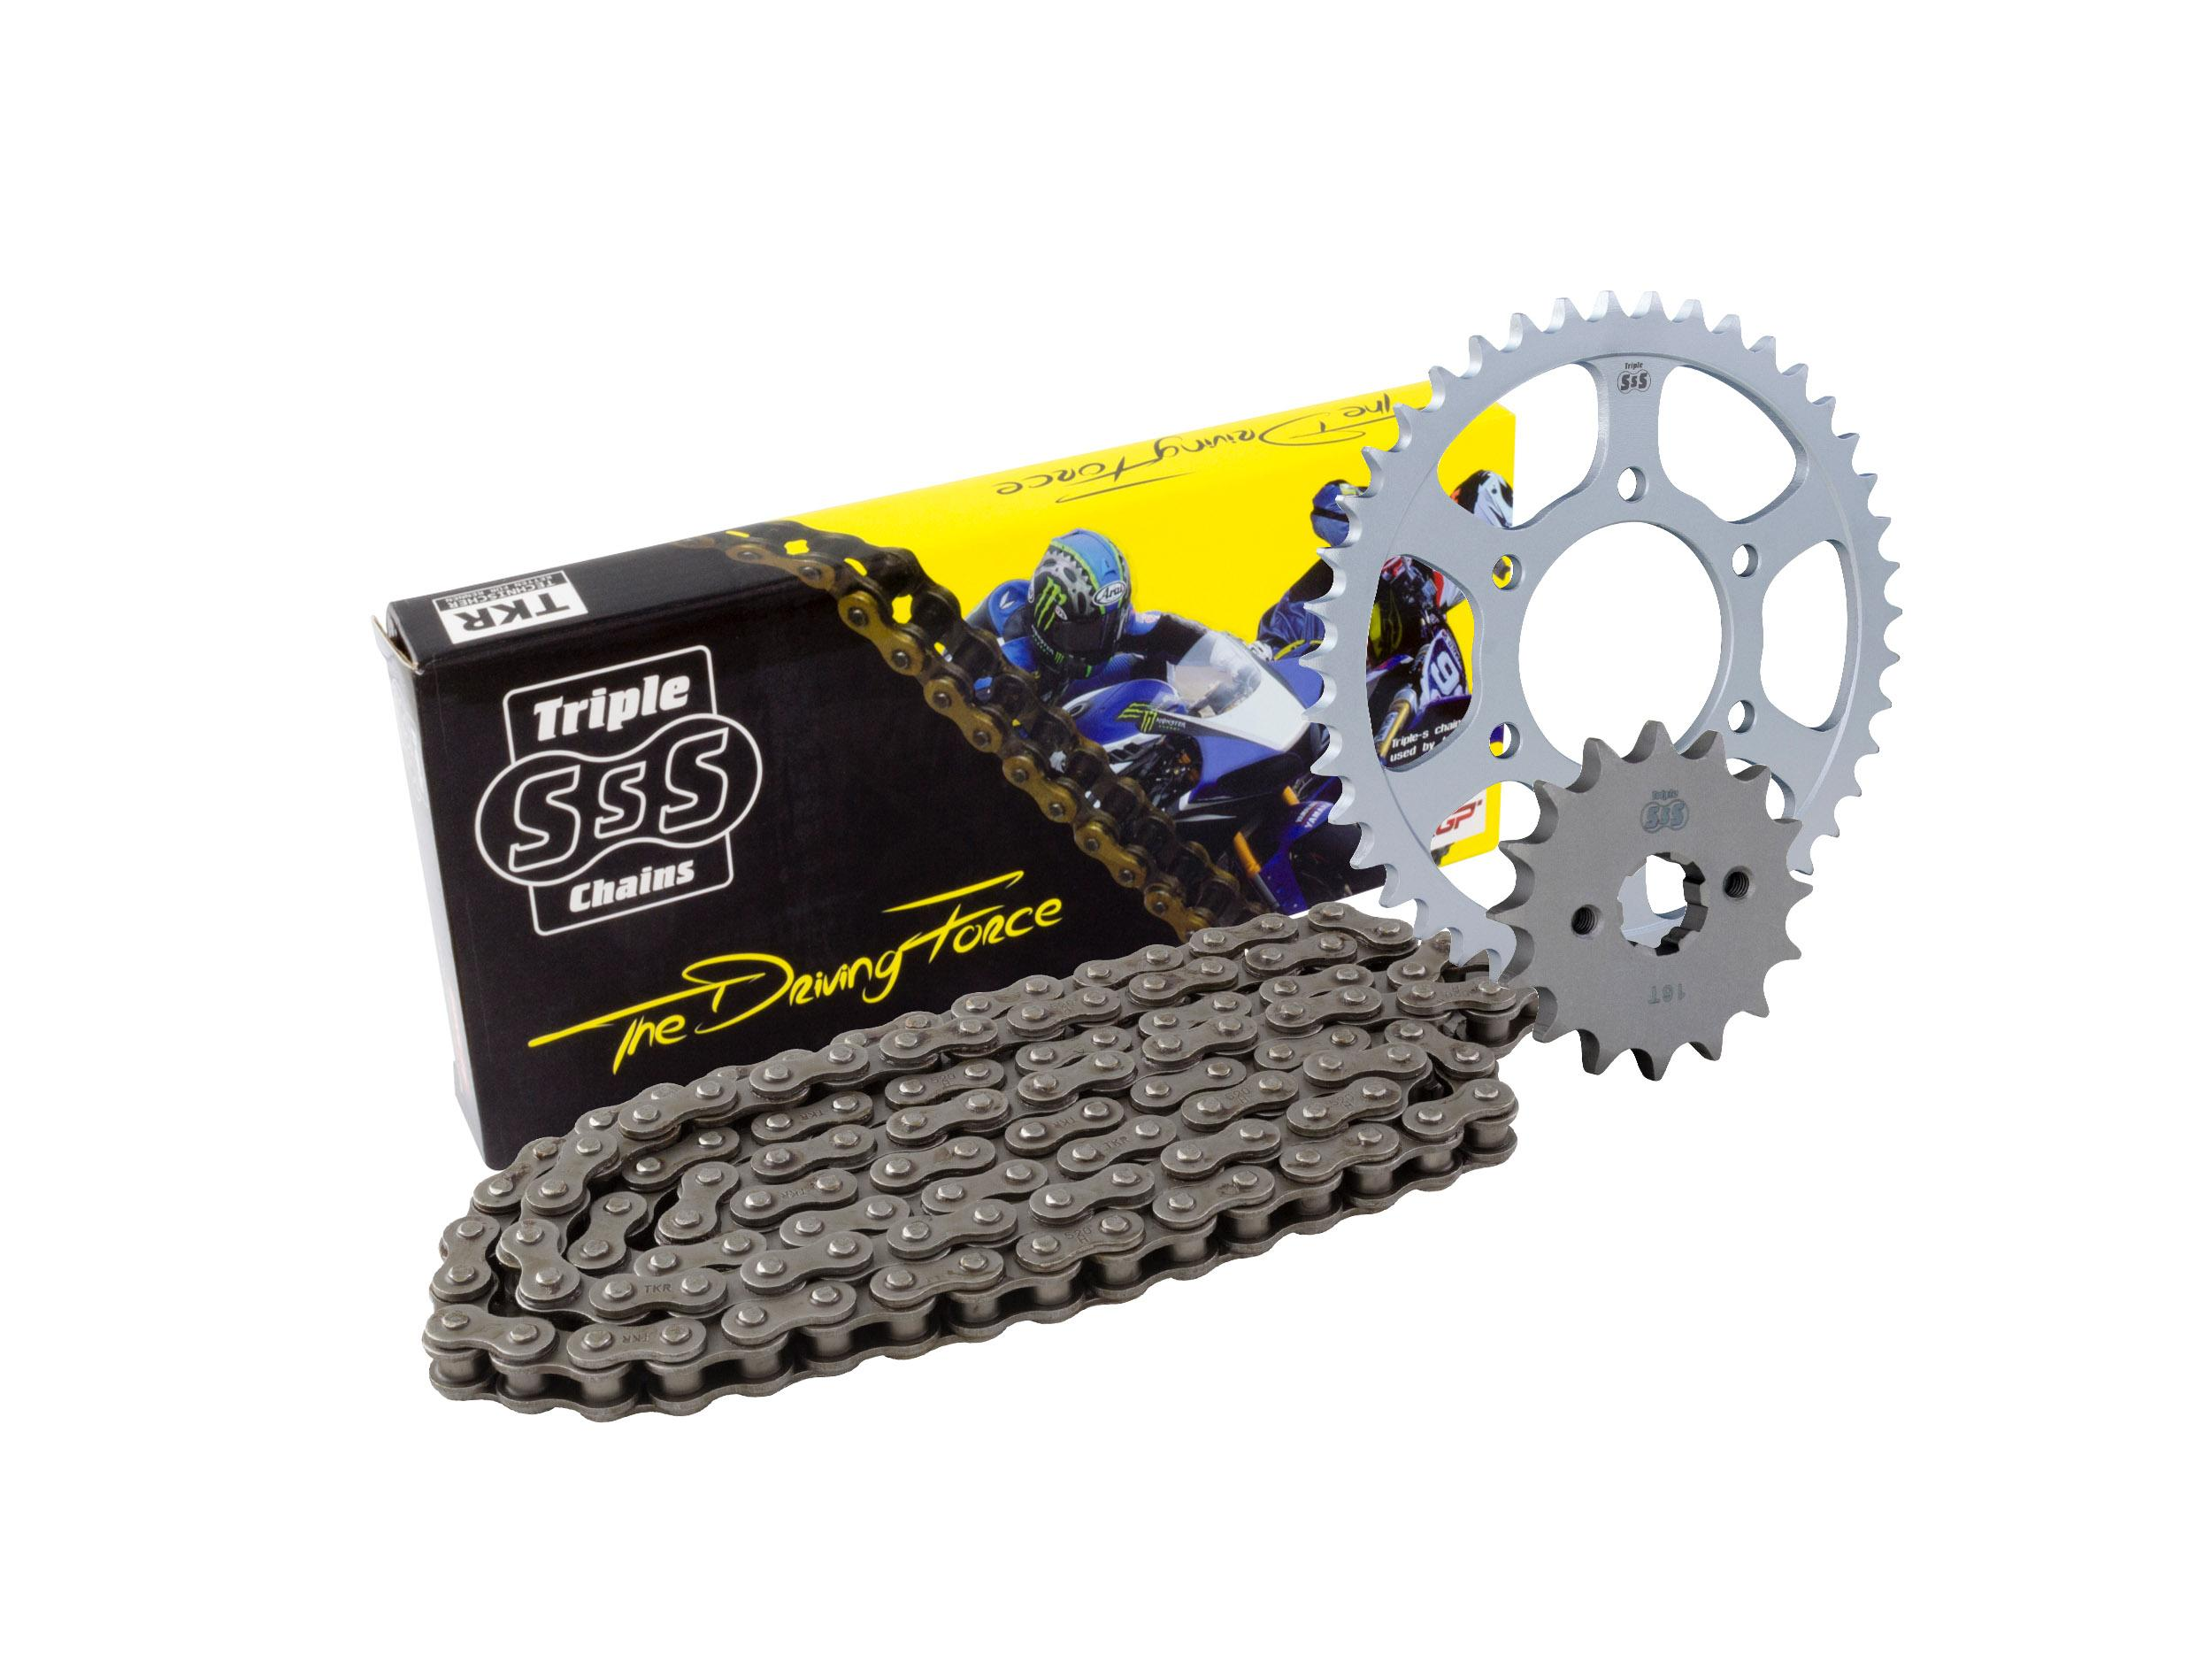 Yamaha WR250 W X/Y 08-10 Chain & Sprocket Kit: 13T Front, 42T Rear, HD Chain 520H 108 Link